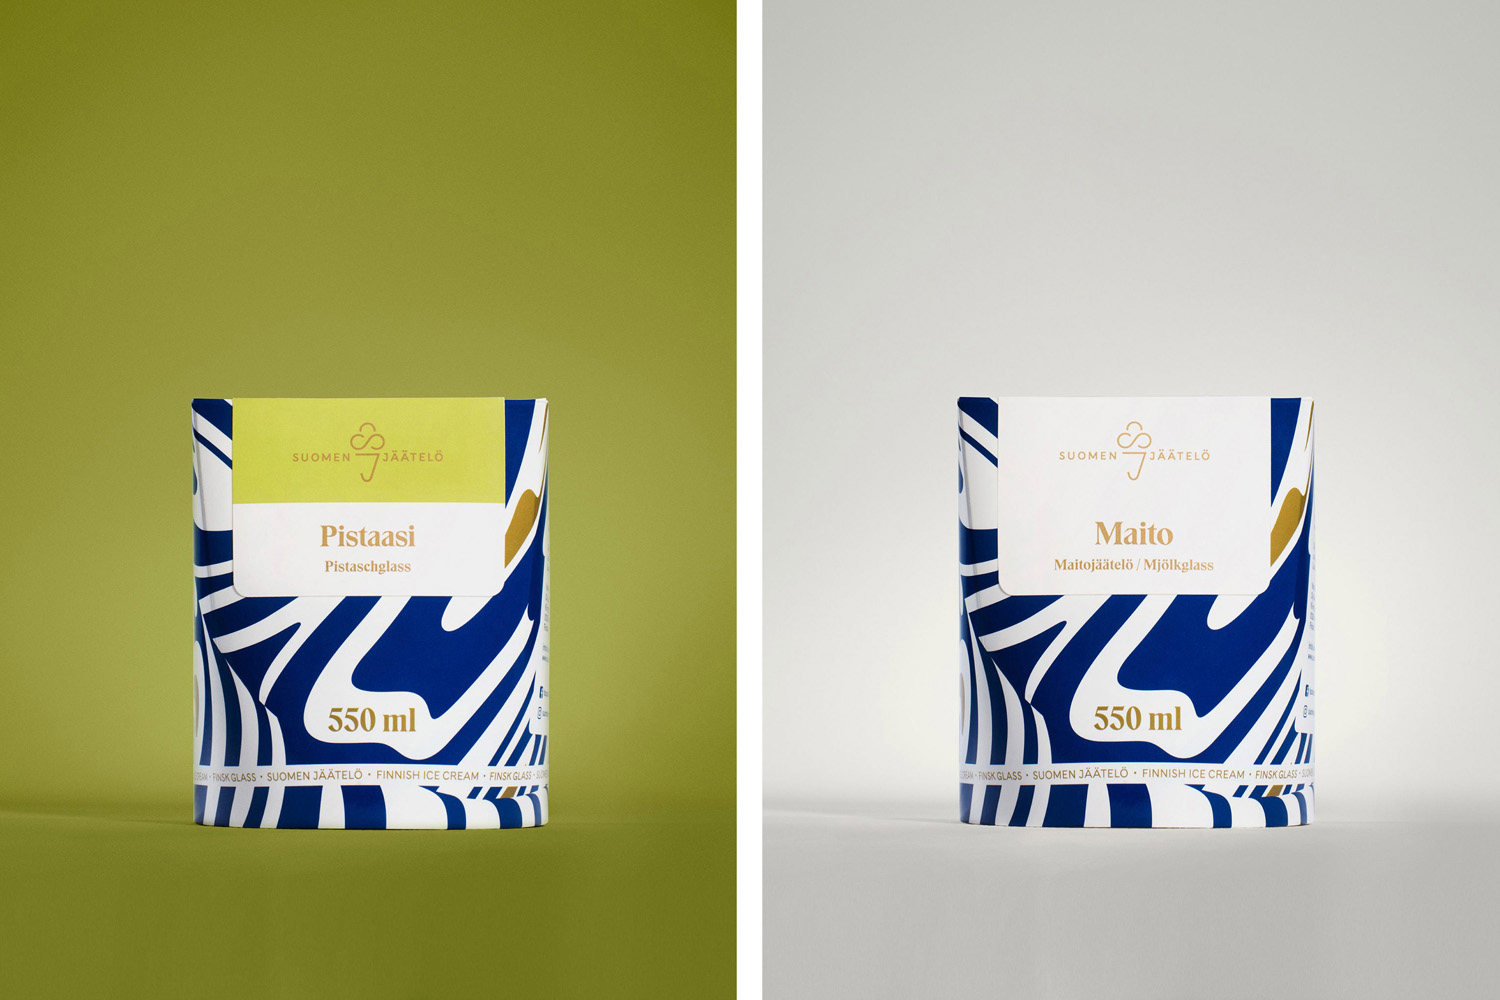 Brand identity and package design by Helsinki-based Werklig for Finnish ice cream brand Suomen Jäätelö